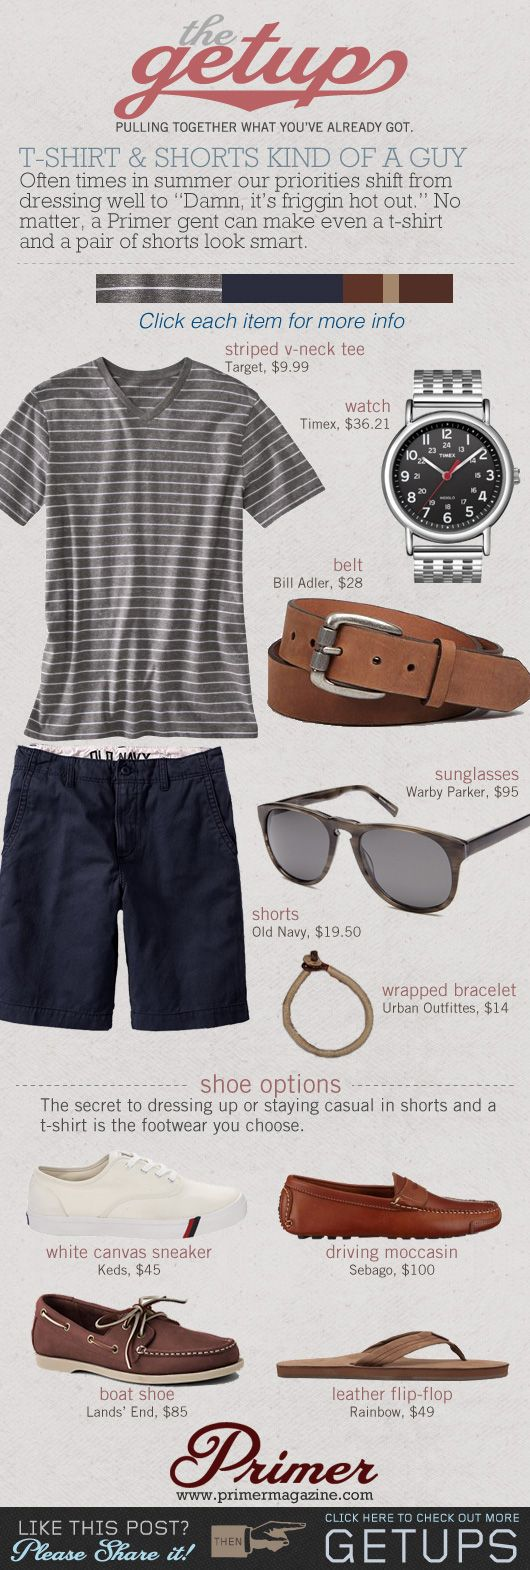 The Getup: T-shirt & Shorts Kind of a Guy   Primer but will never in my life wear a boat shoe. The are horrible.